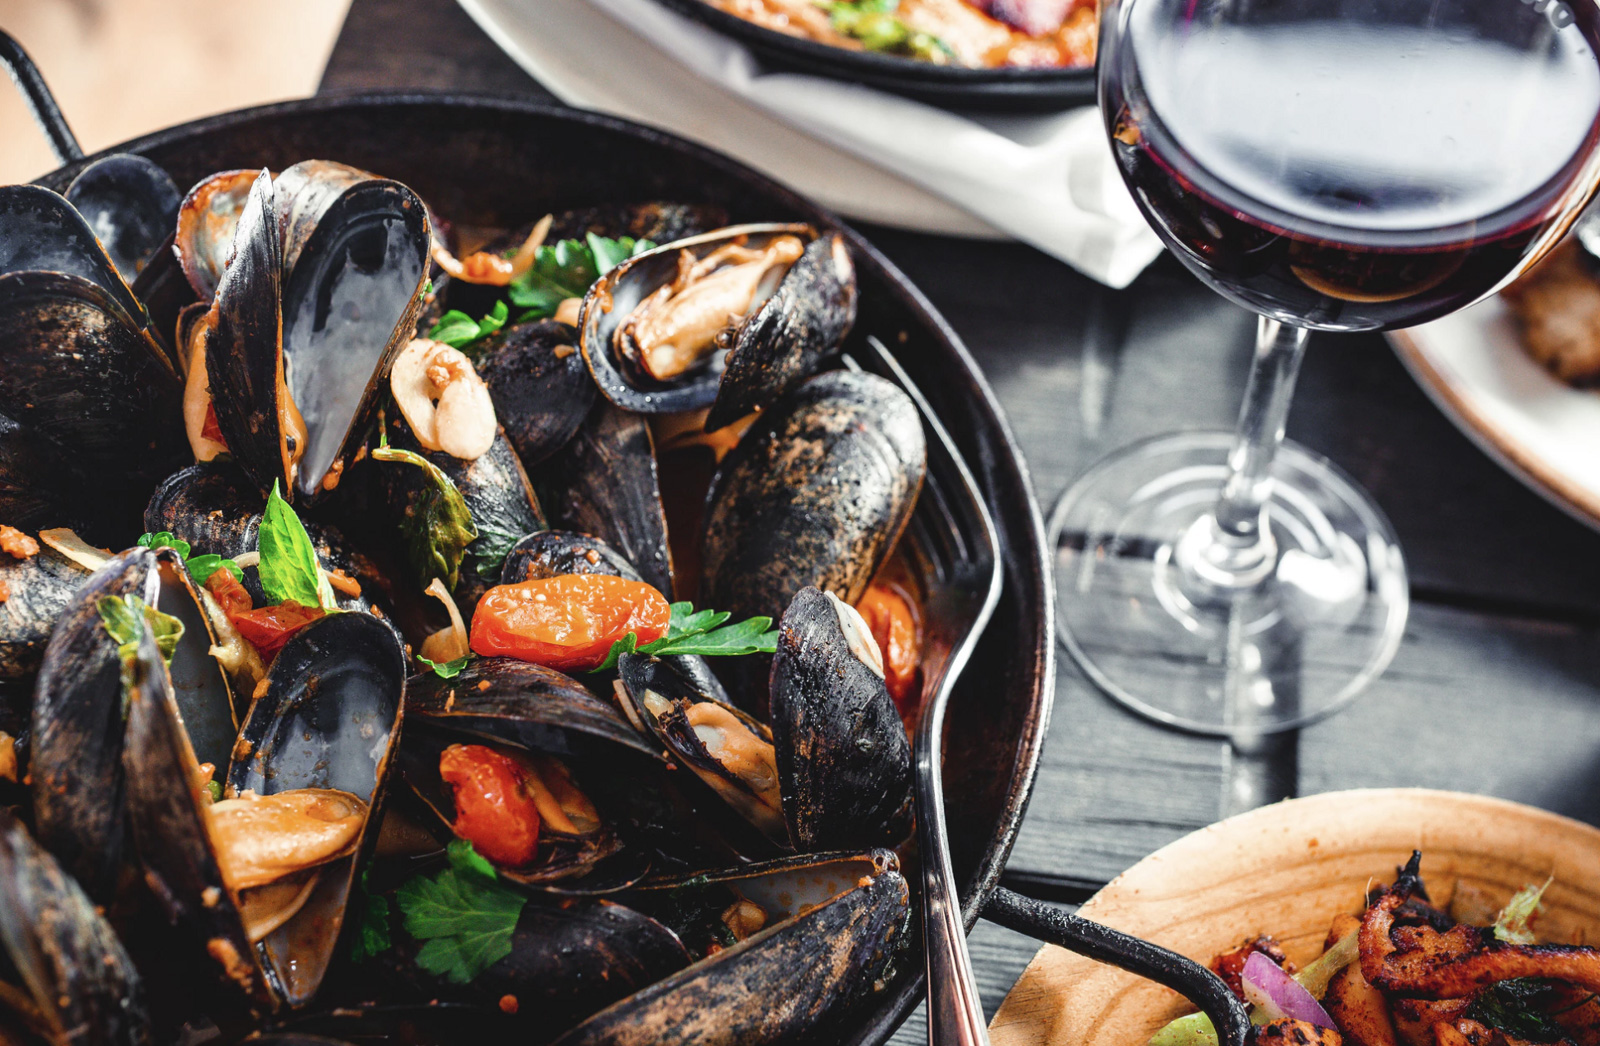 A dinner with muscles and a glass of wine, another food sensitivity to shellfish